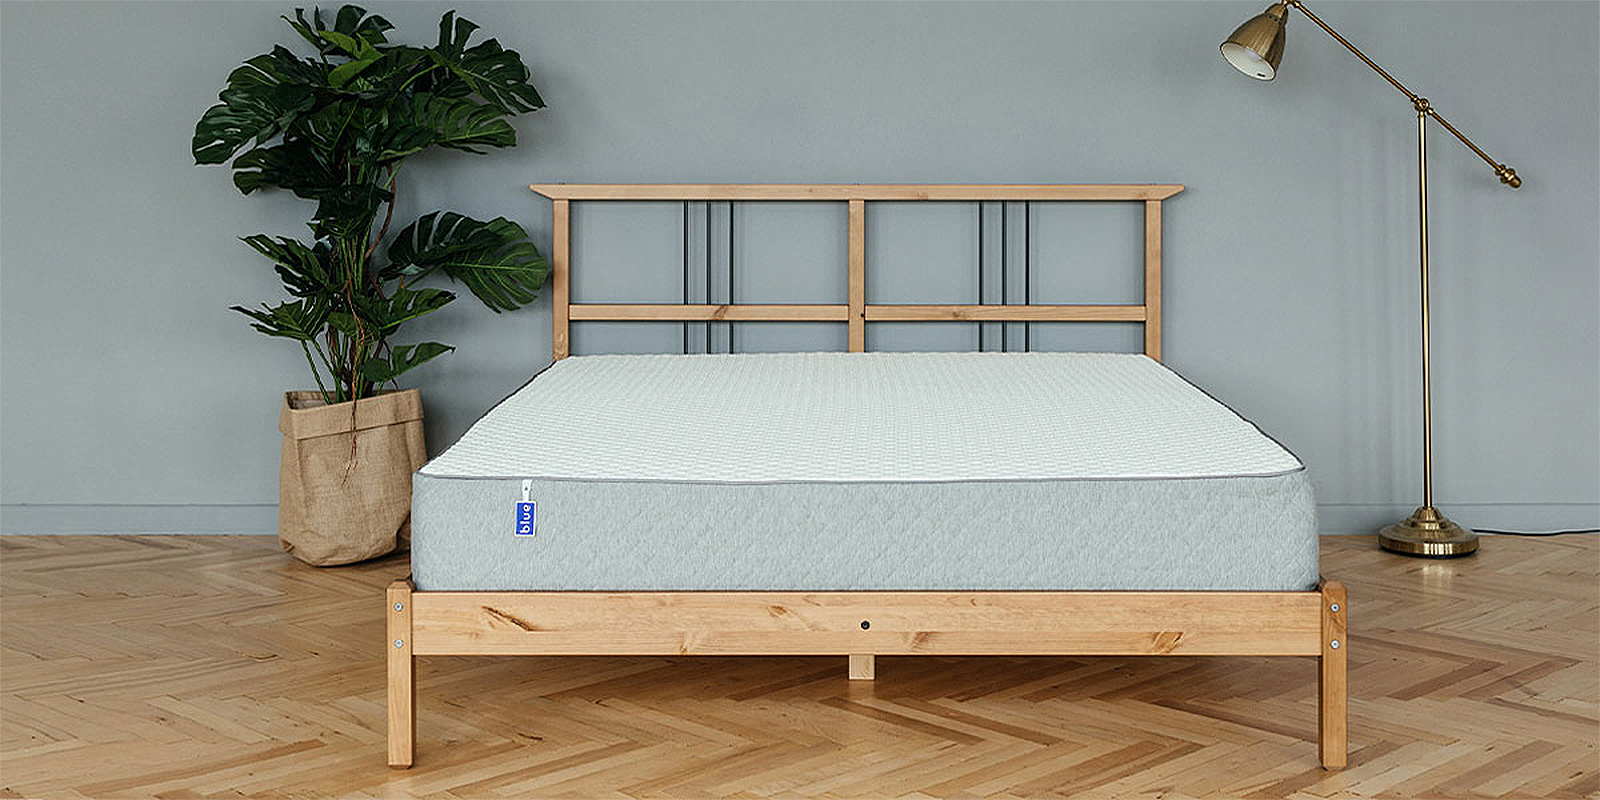 Матрас Blue Sleep 160х200